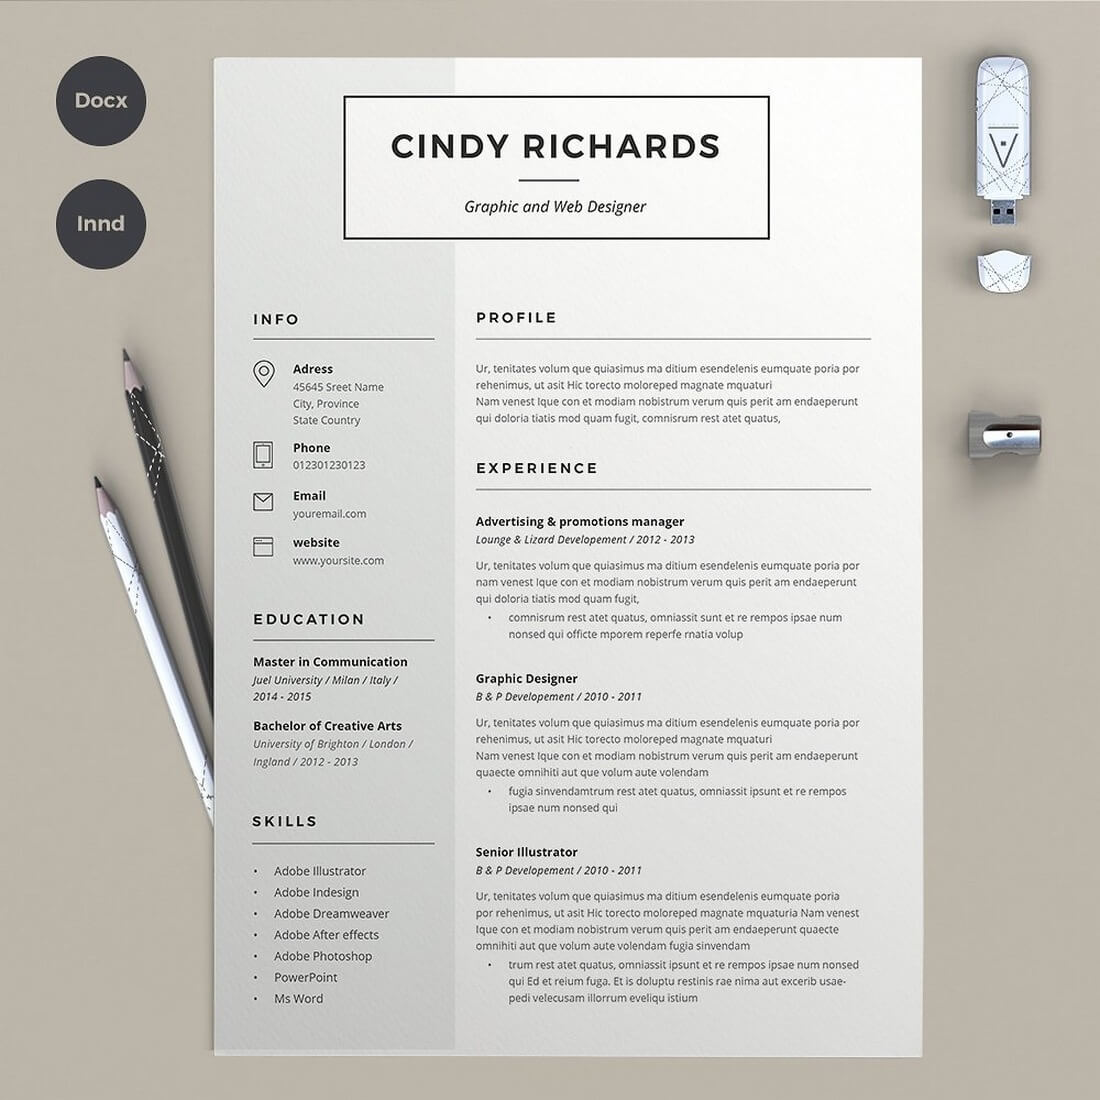 Resume-Cindy 50+ Best CV & Resume Templates 2020 design tips